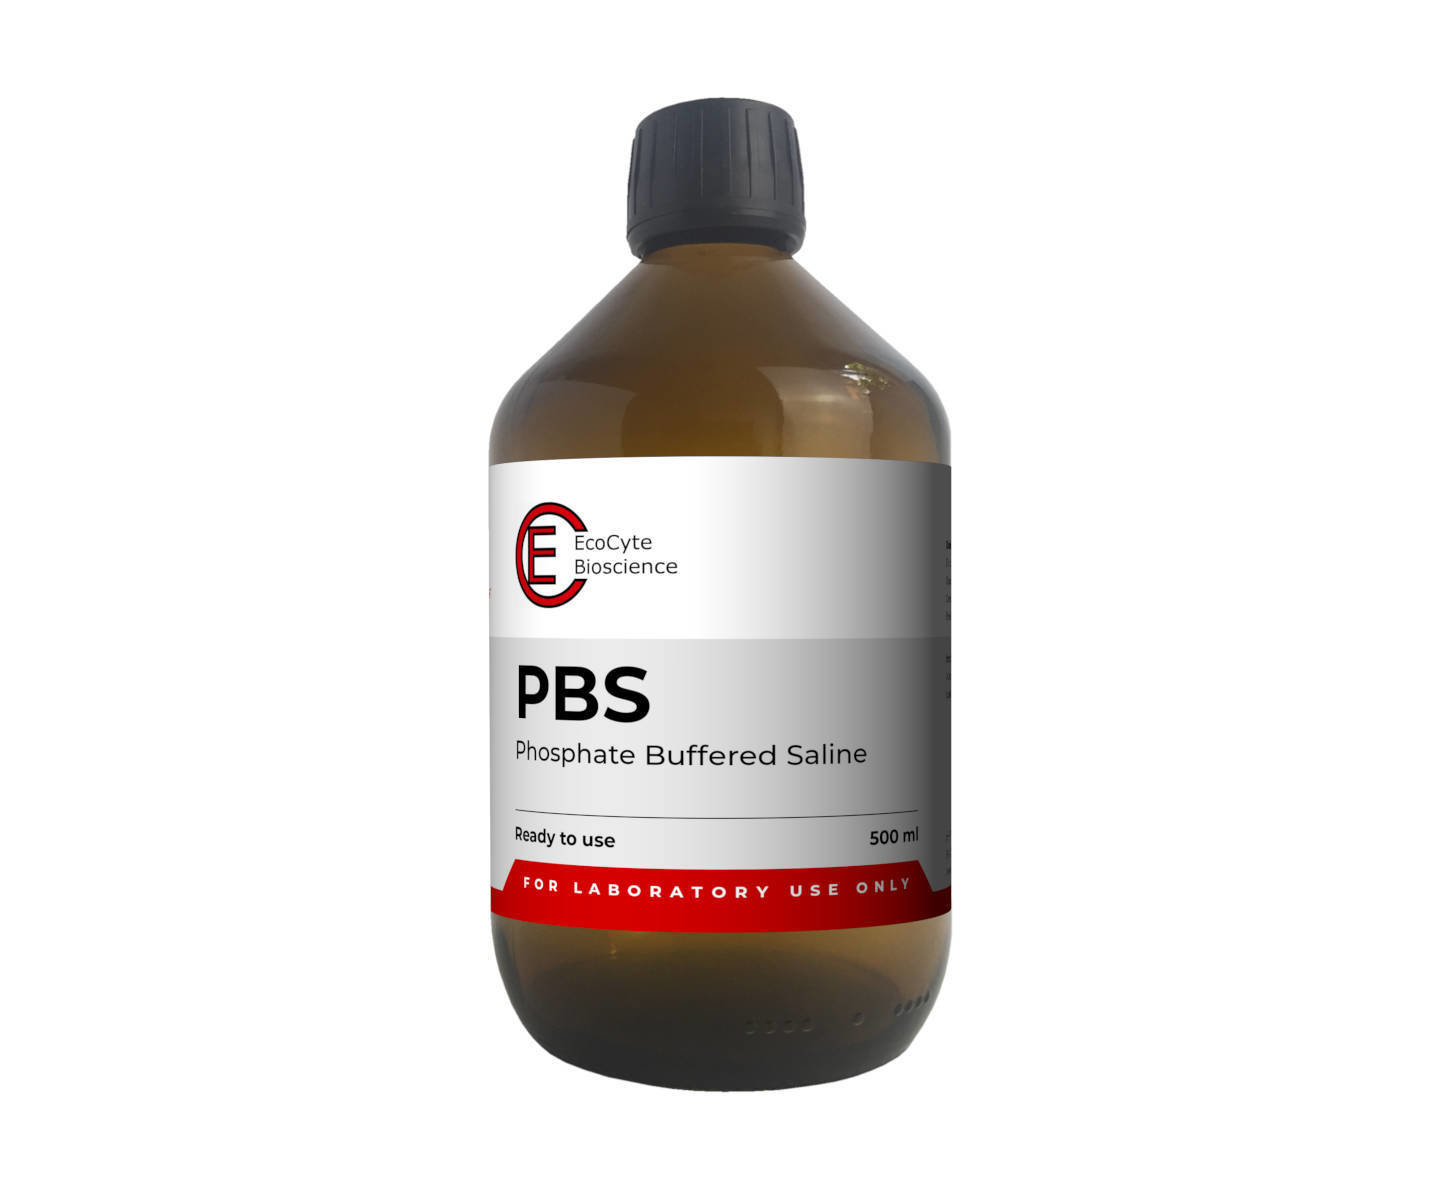 PBS – Phosphate Buffered Saline [Ready to use]